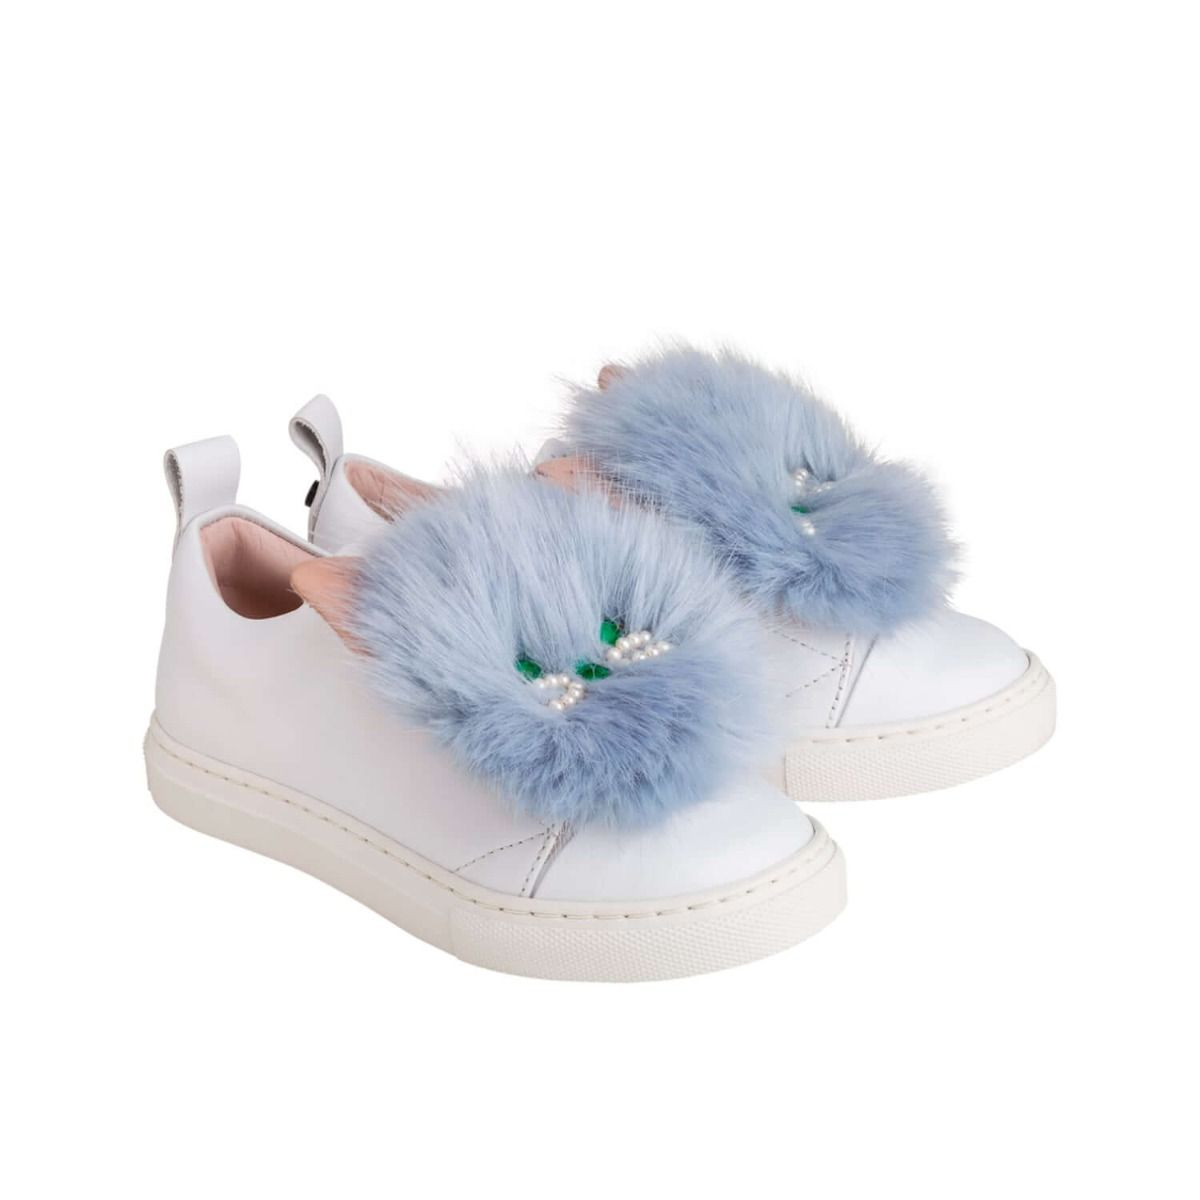 Baby and girl's sneakers in white leather with light blue fur applique and cat face applique